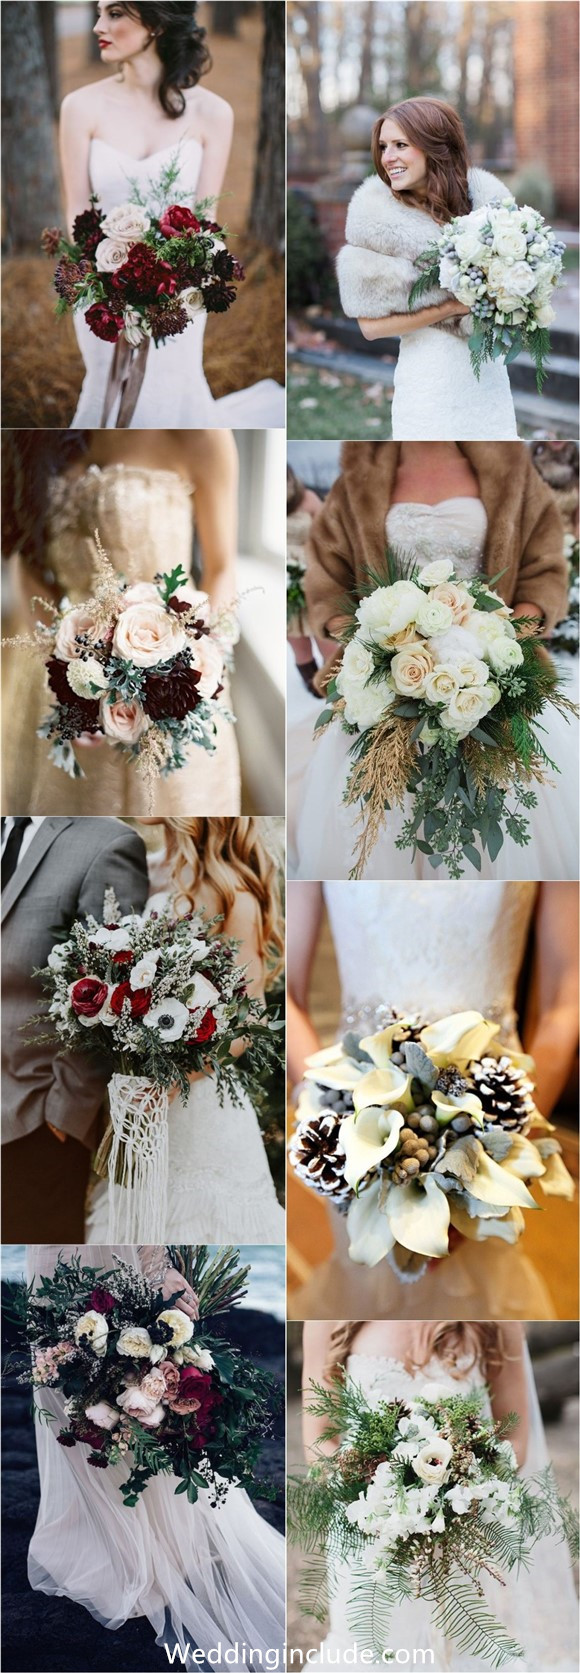 Winter Wedding Bouquet Ideas You Must Have!